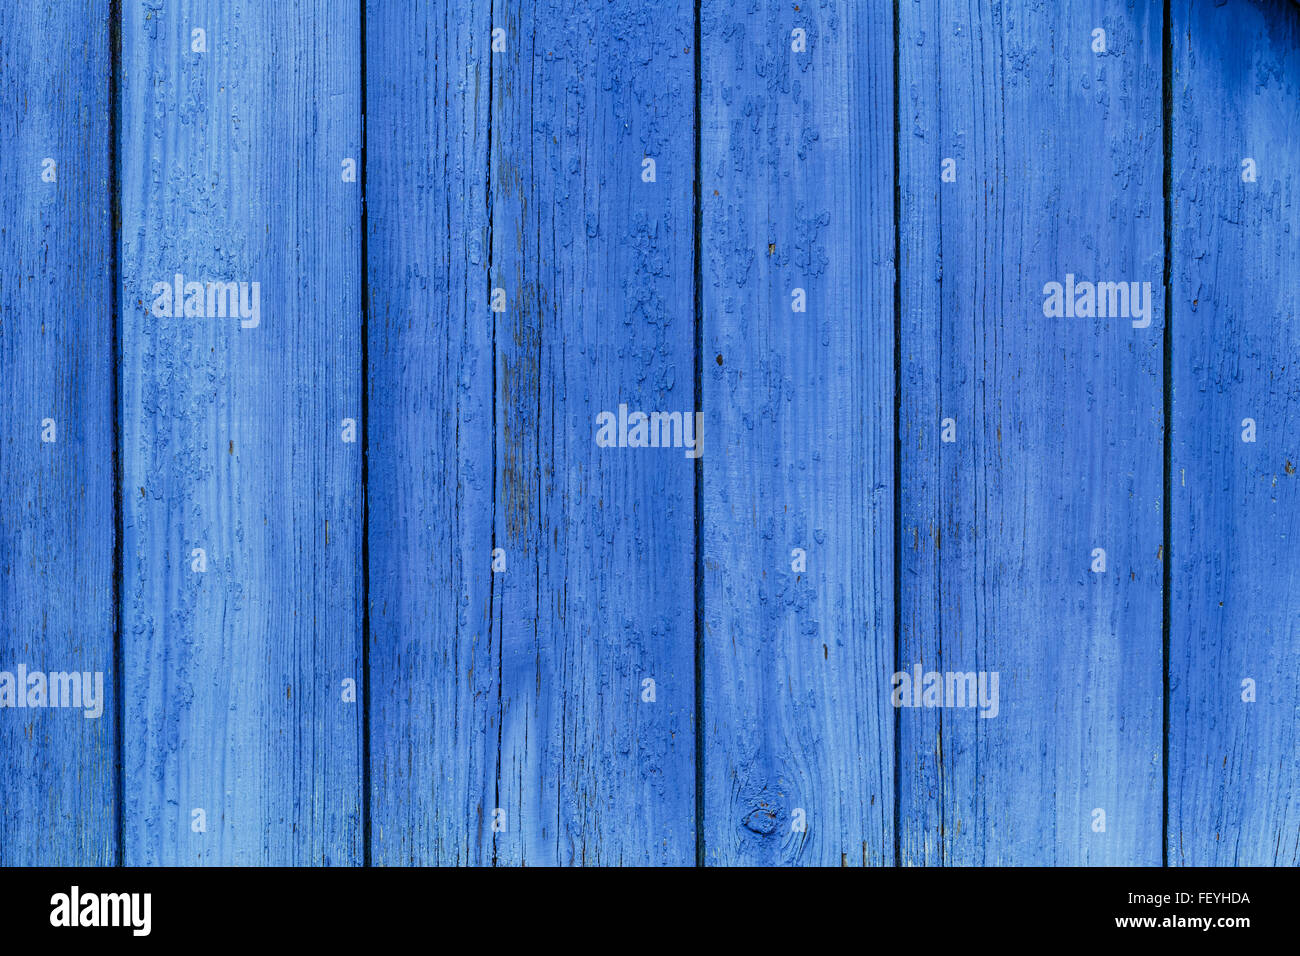 Old Blue Obsolete Wooden Board Planks Background Texture - Stock Image